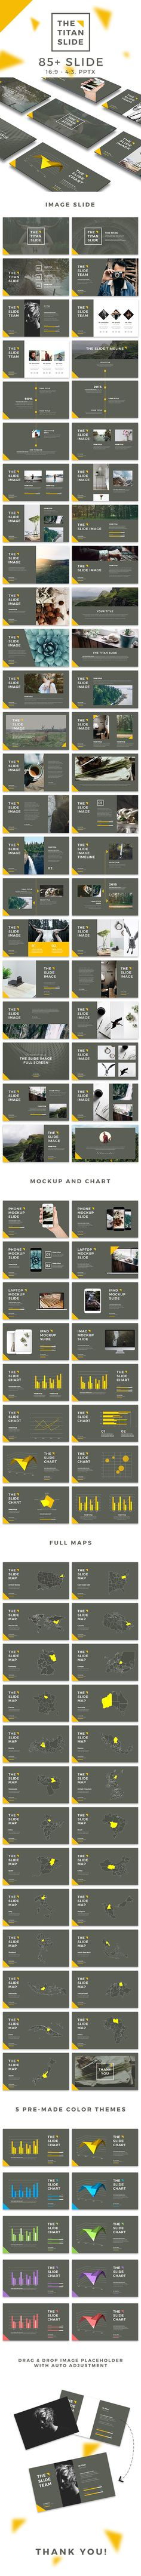 The Titan Slide - Powerpoint Template. Download here: http://graphicriver.net/item/the-titan-slide-powerpoint-template/16393844?ref=ksioks